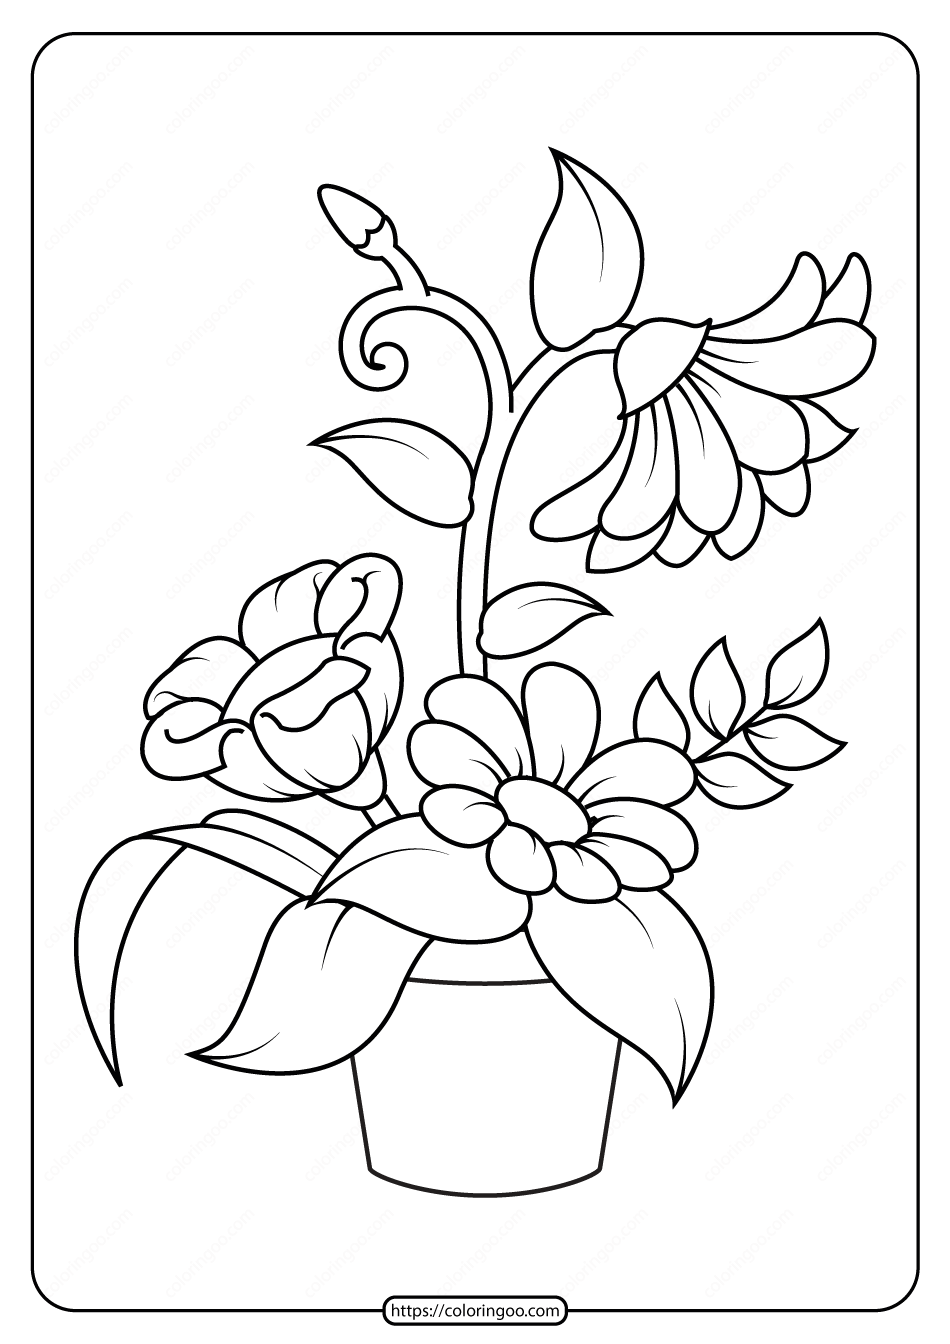 coloring pages of a flower free printable flowers pdf coloring pages 10 pages flower coloring of a